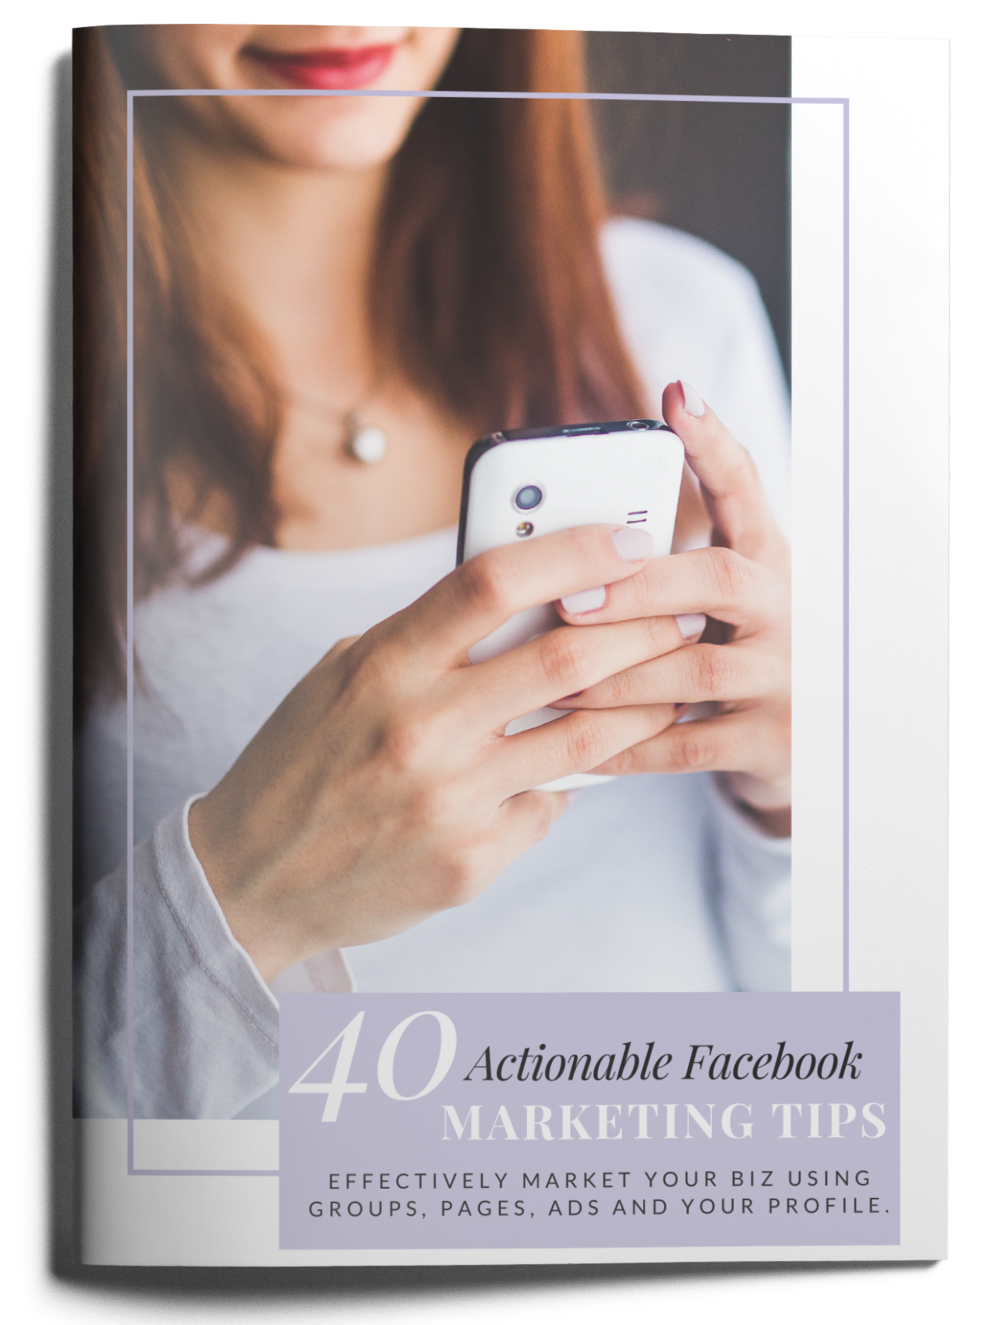 40 Actionable Facebook Marketing Tips | Market your business using groups, ads, pages and profiles